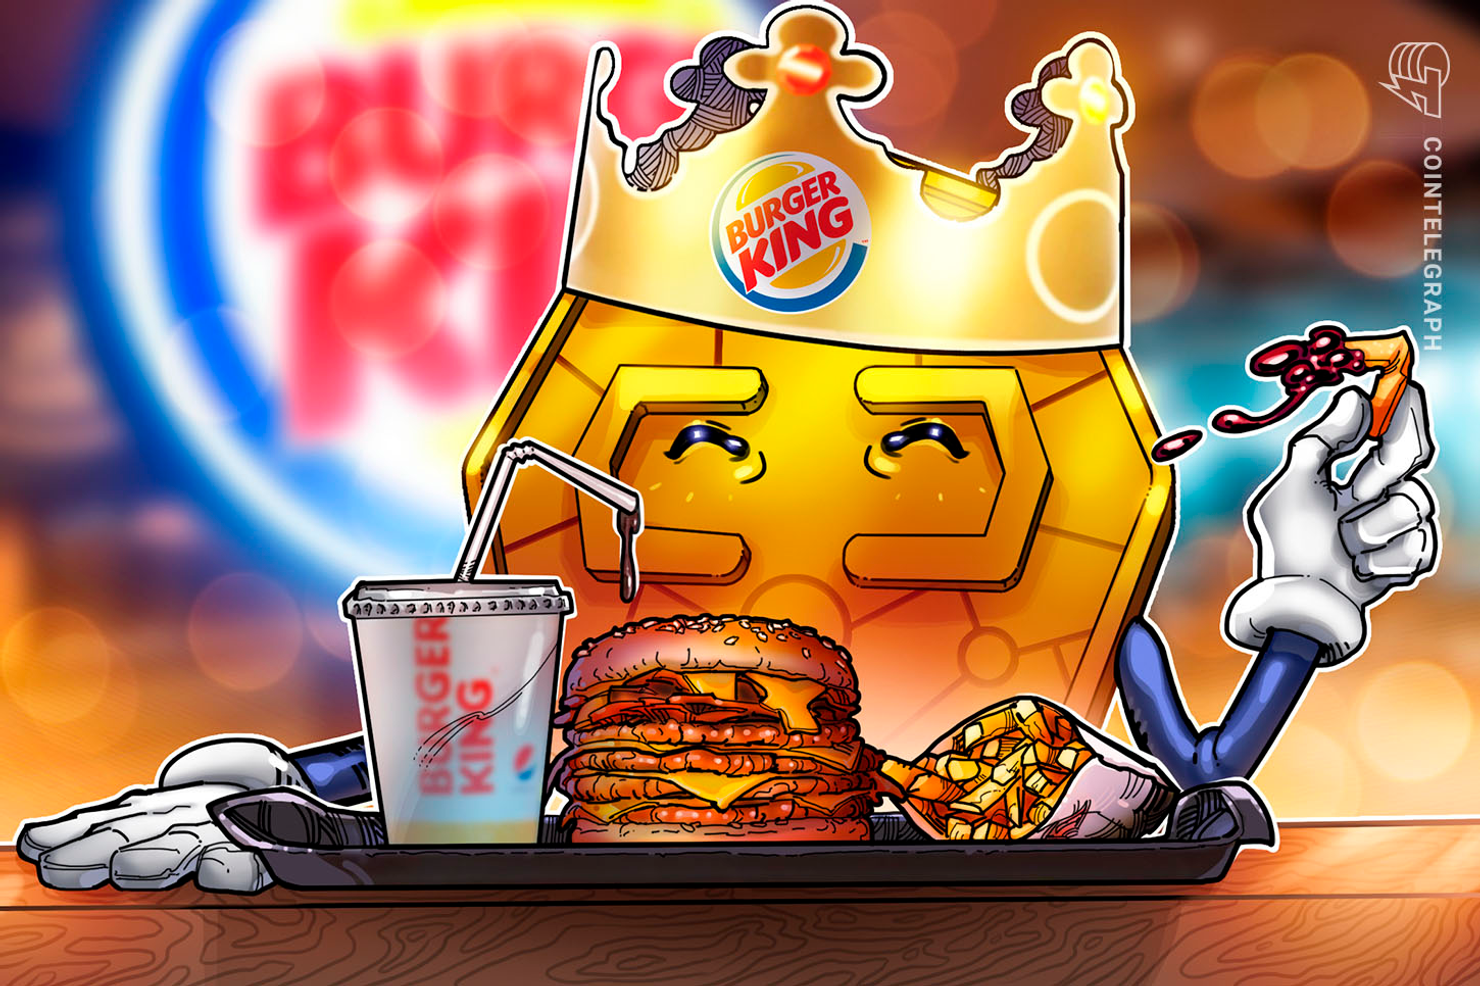 Burger King Venezuela Starts Bitcoin Payments in First of 40 Stores